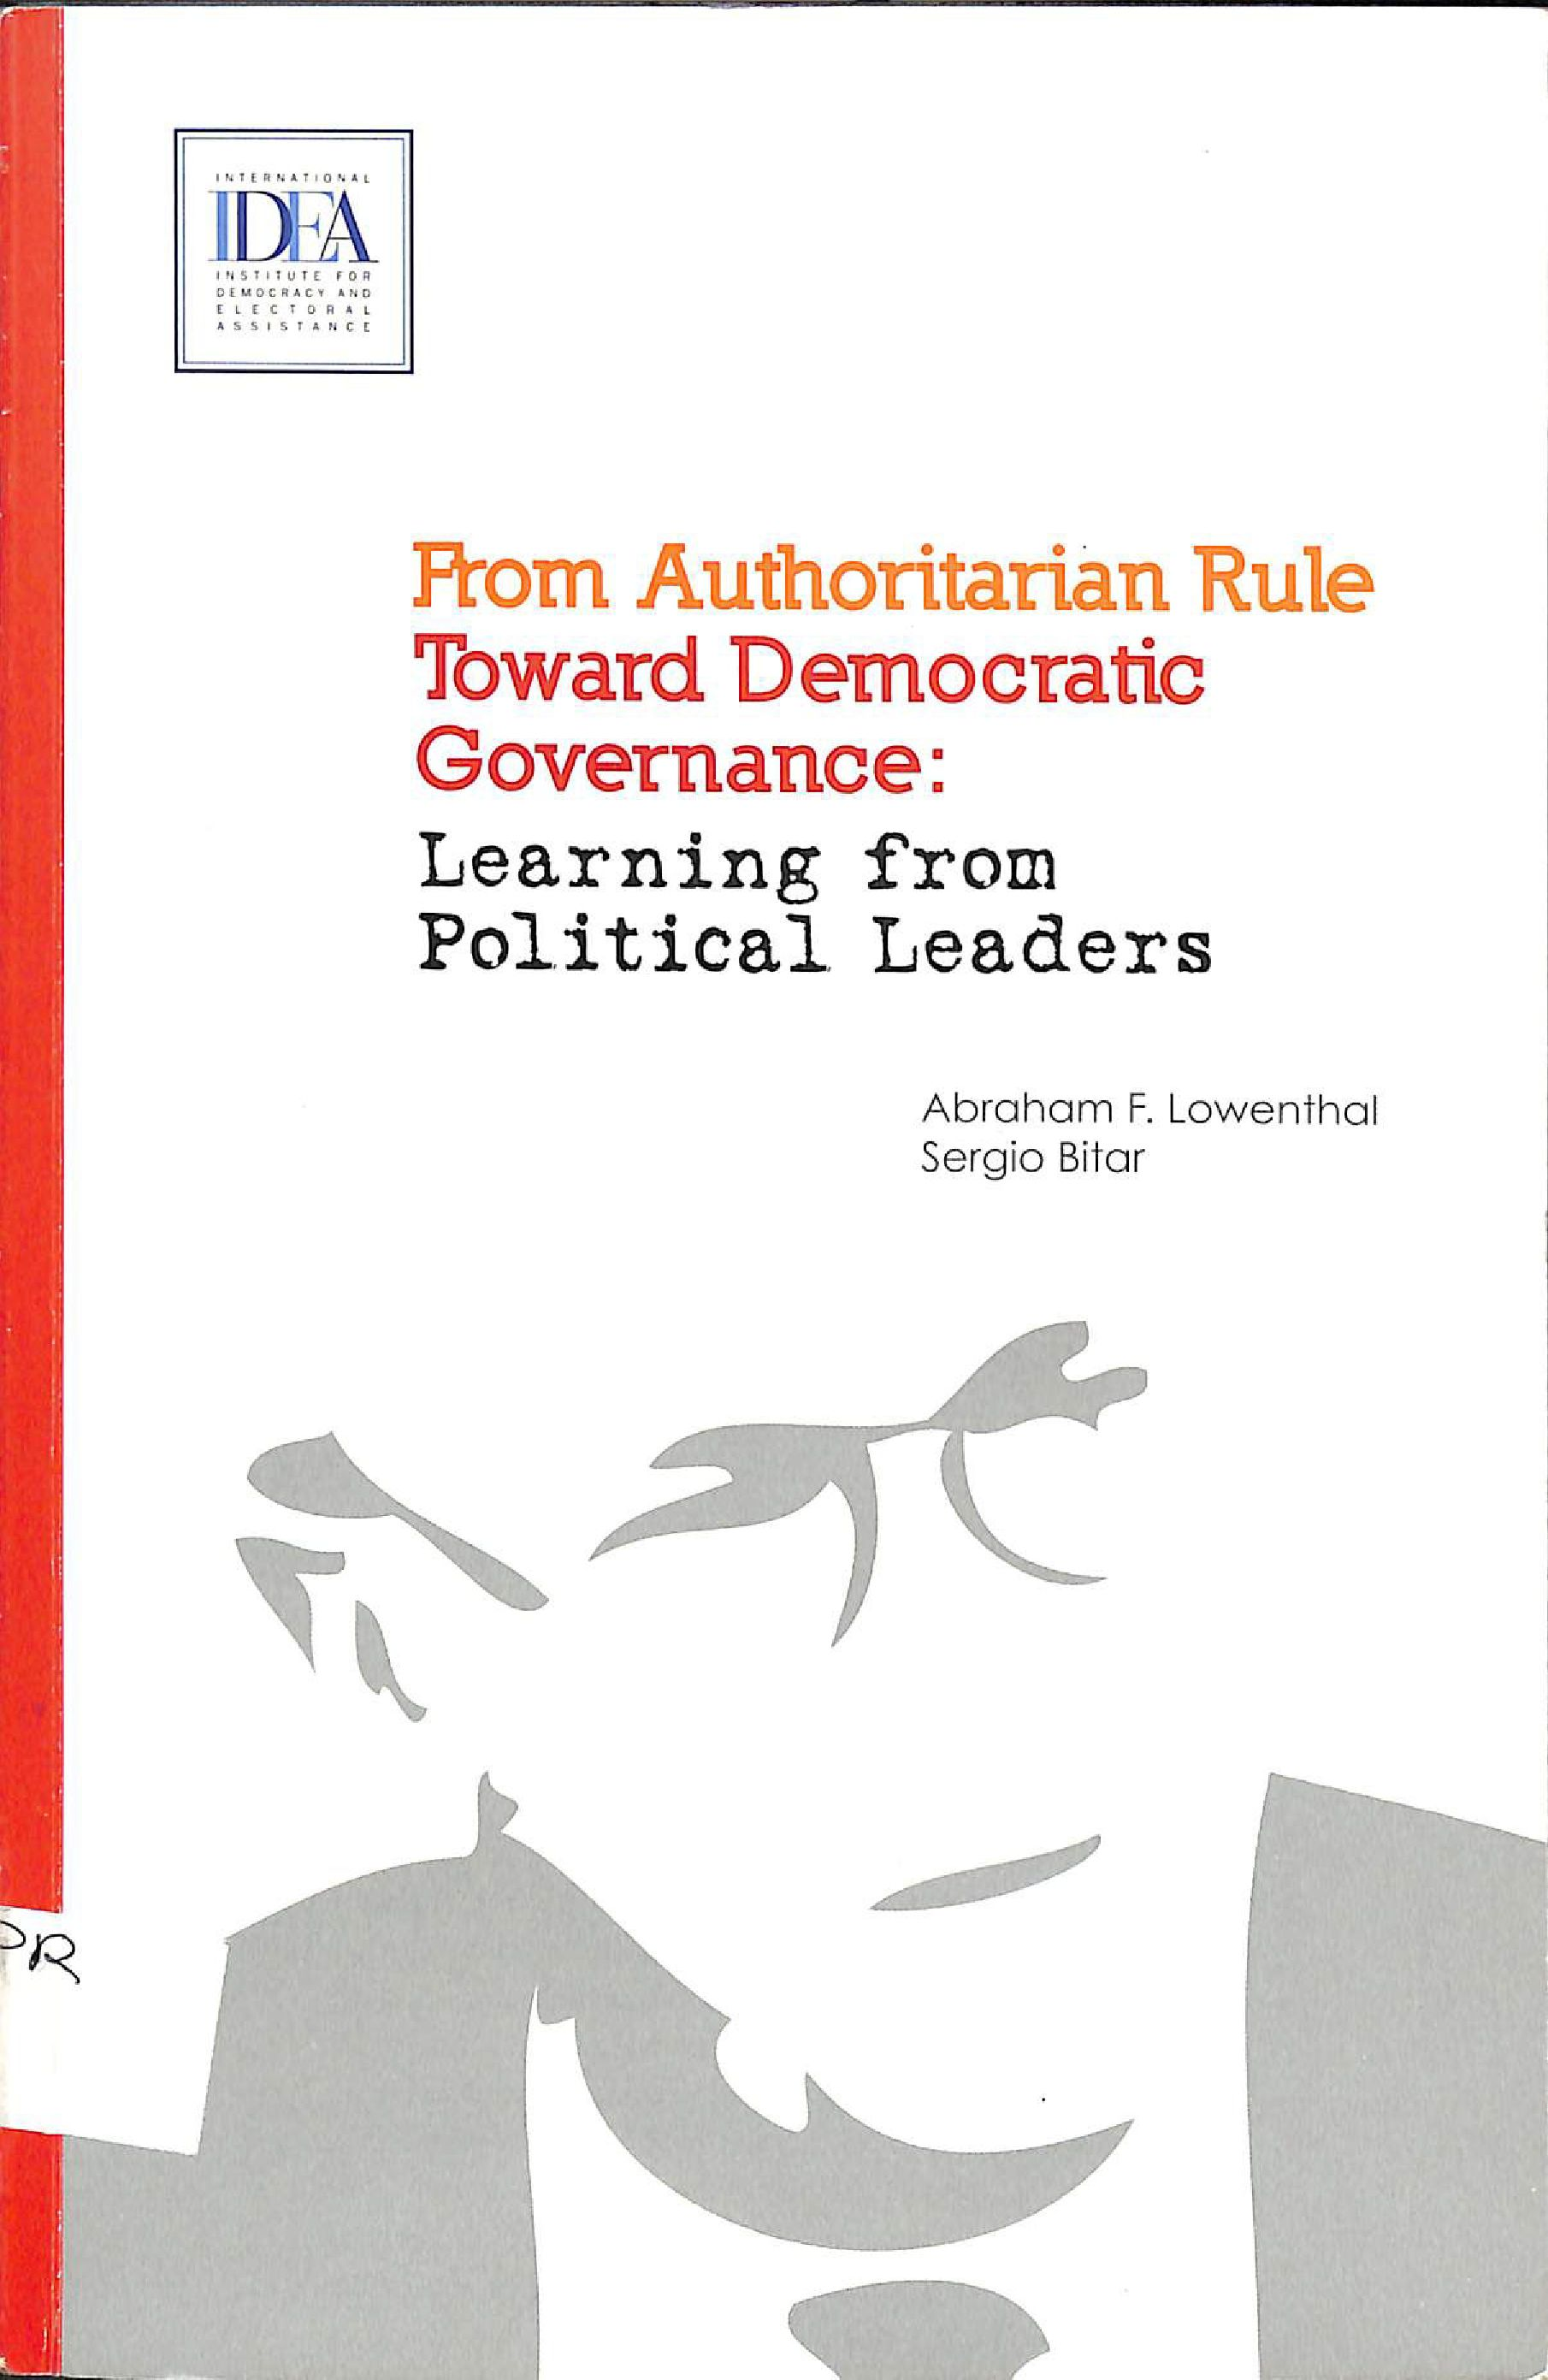 From authoritarian rule toward democratic governance: learning from political leaders